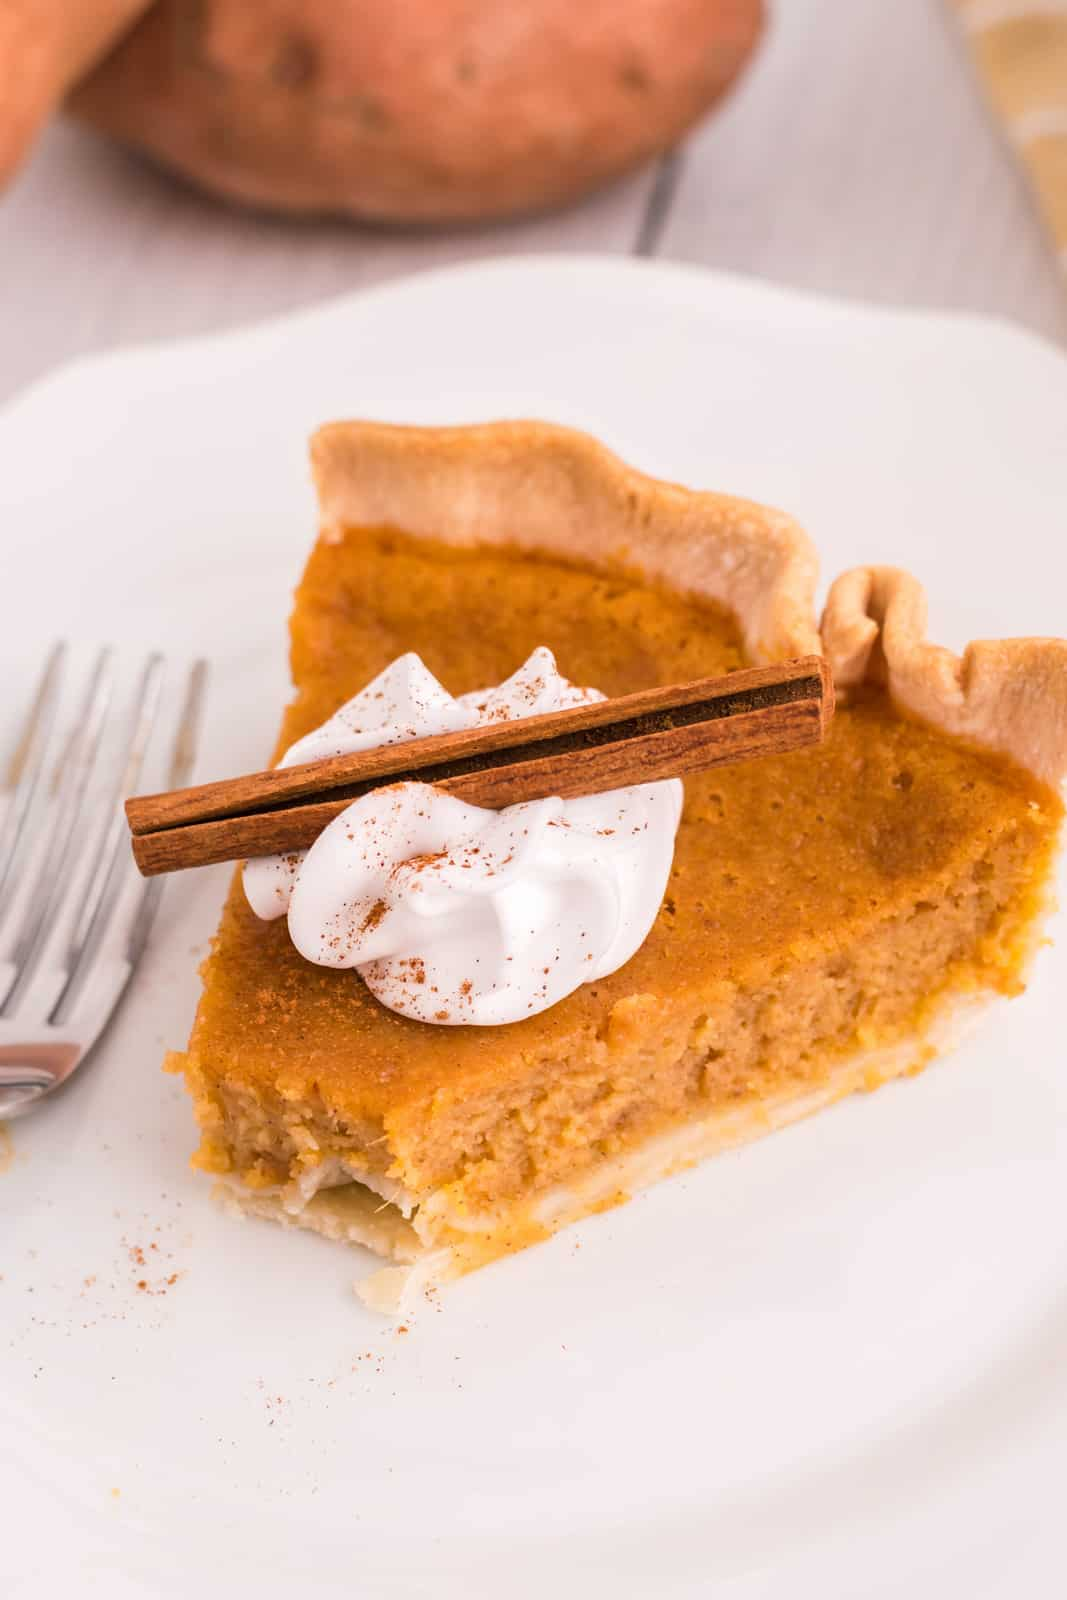 Sweet Potato Pie recipe on plate with bite taken out